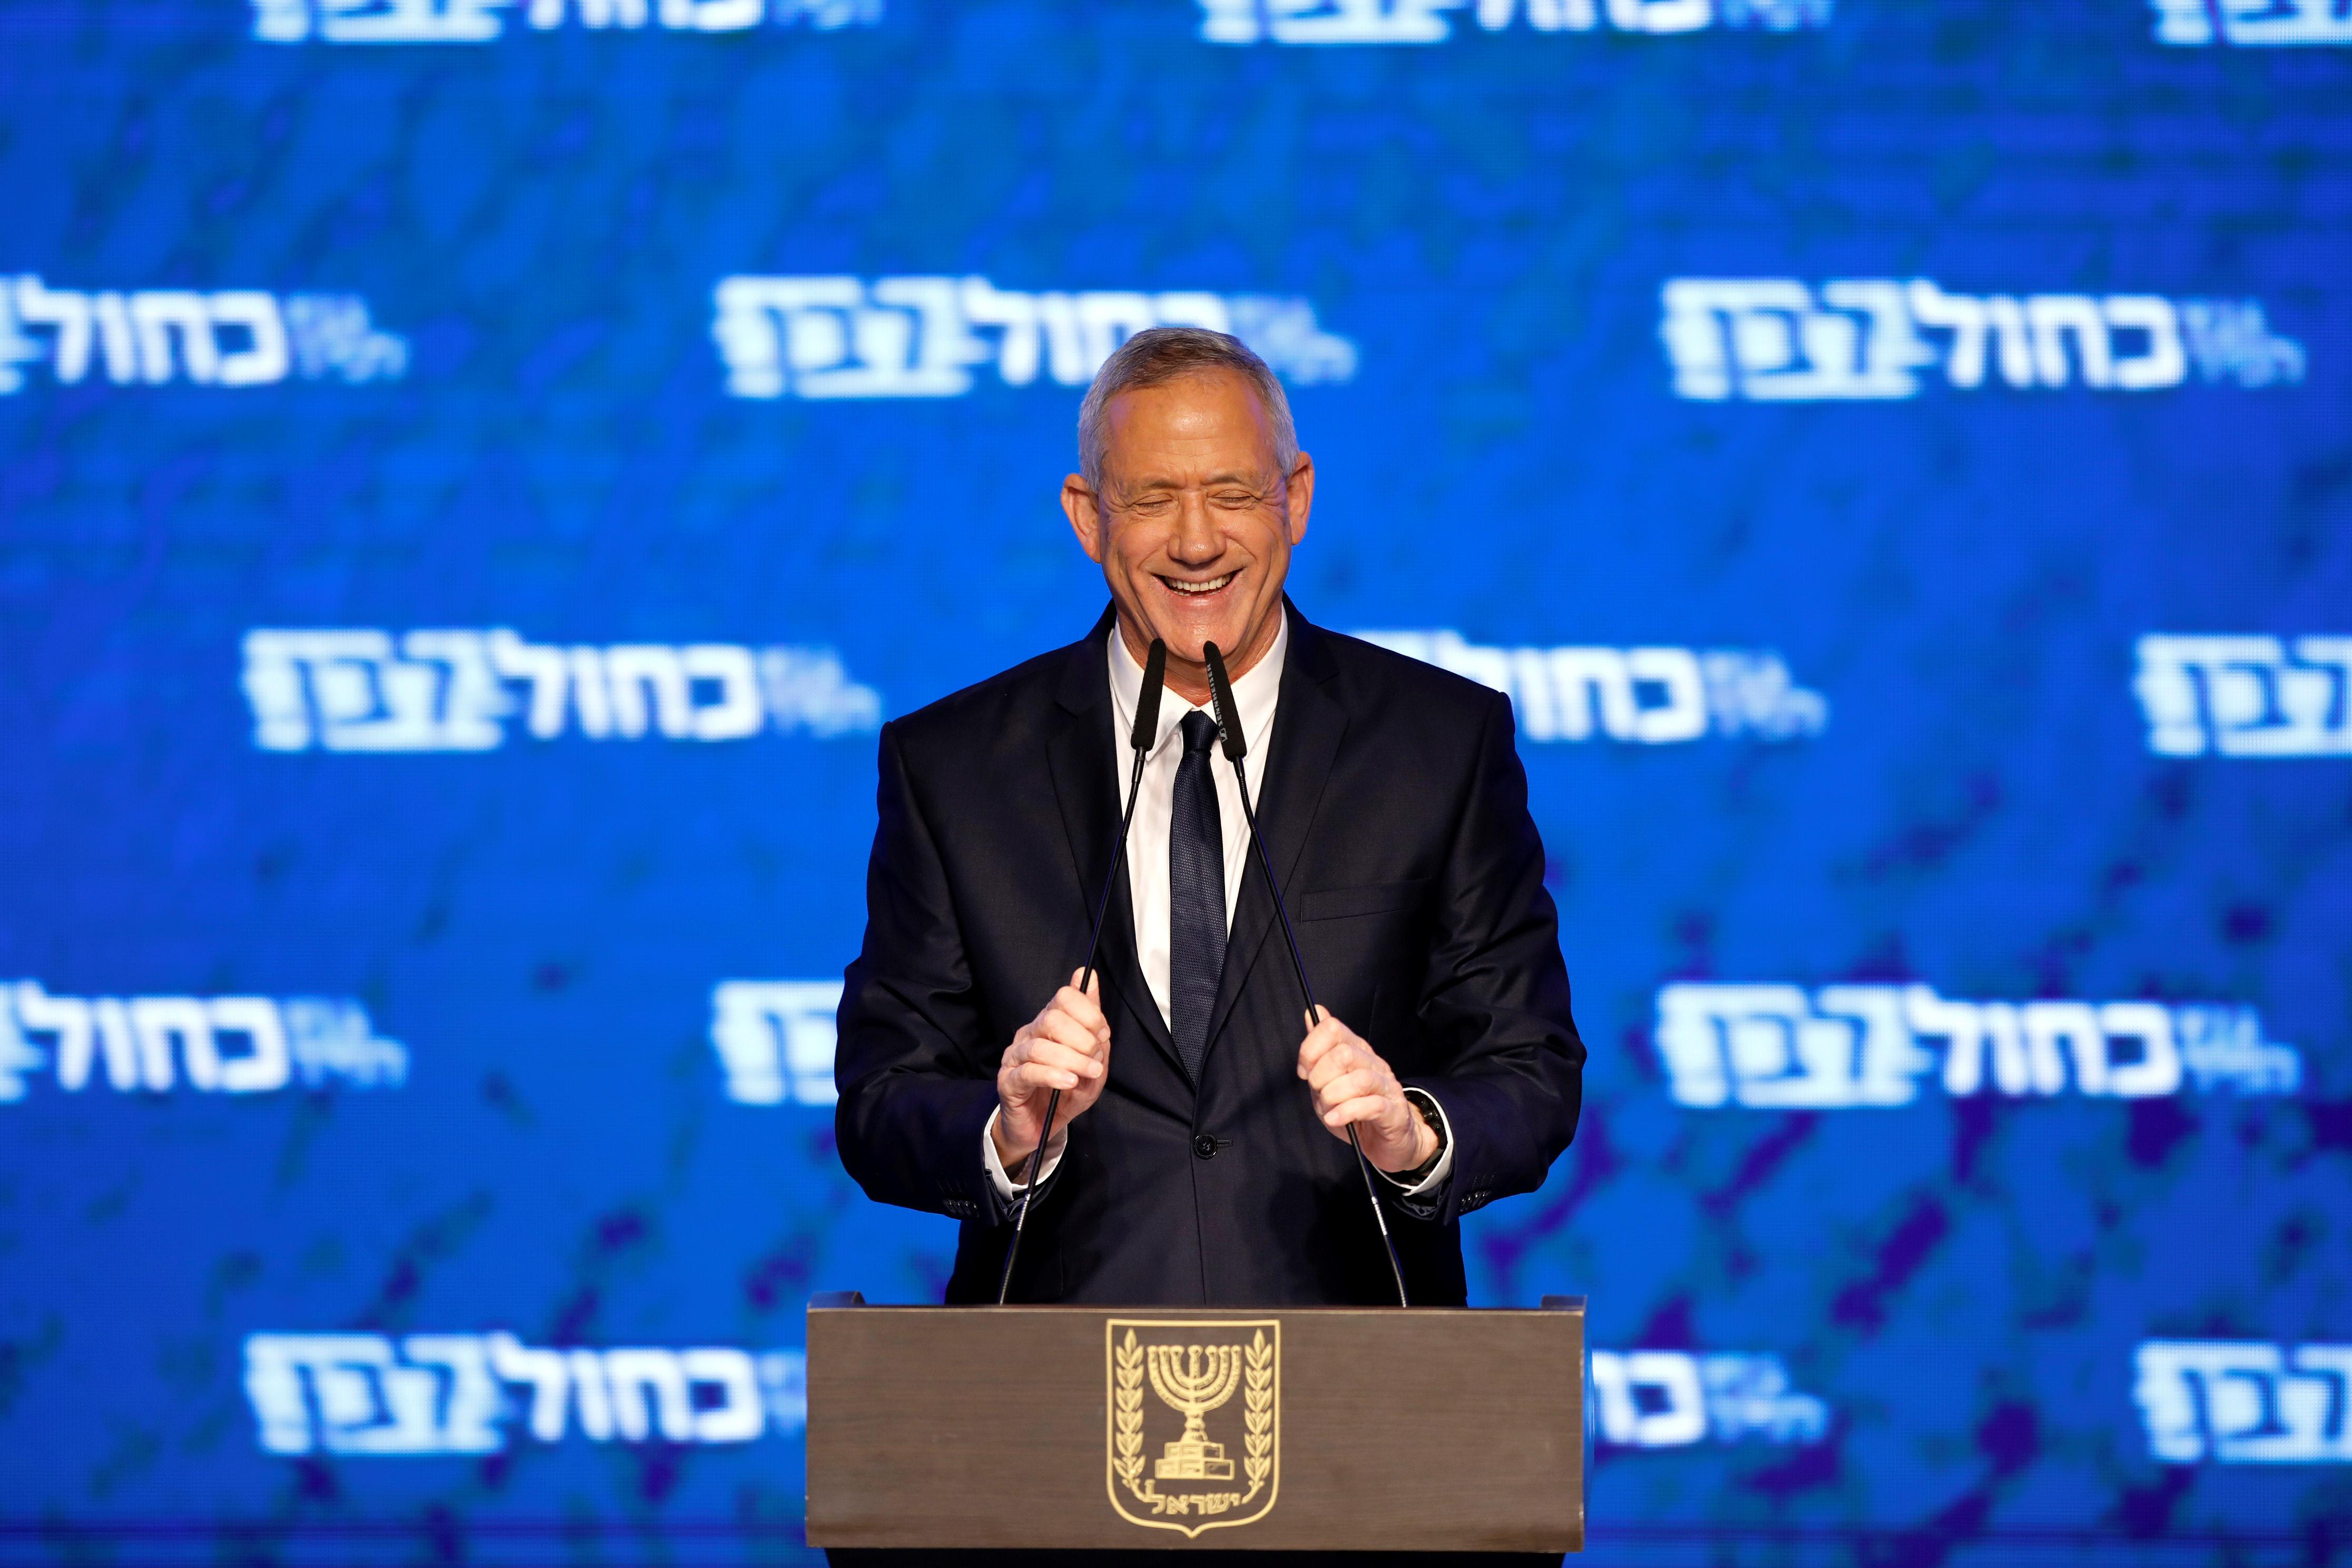 Explainer: Israeli election results: what happens next?